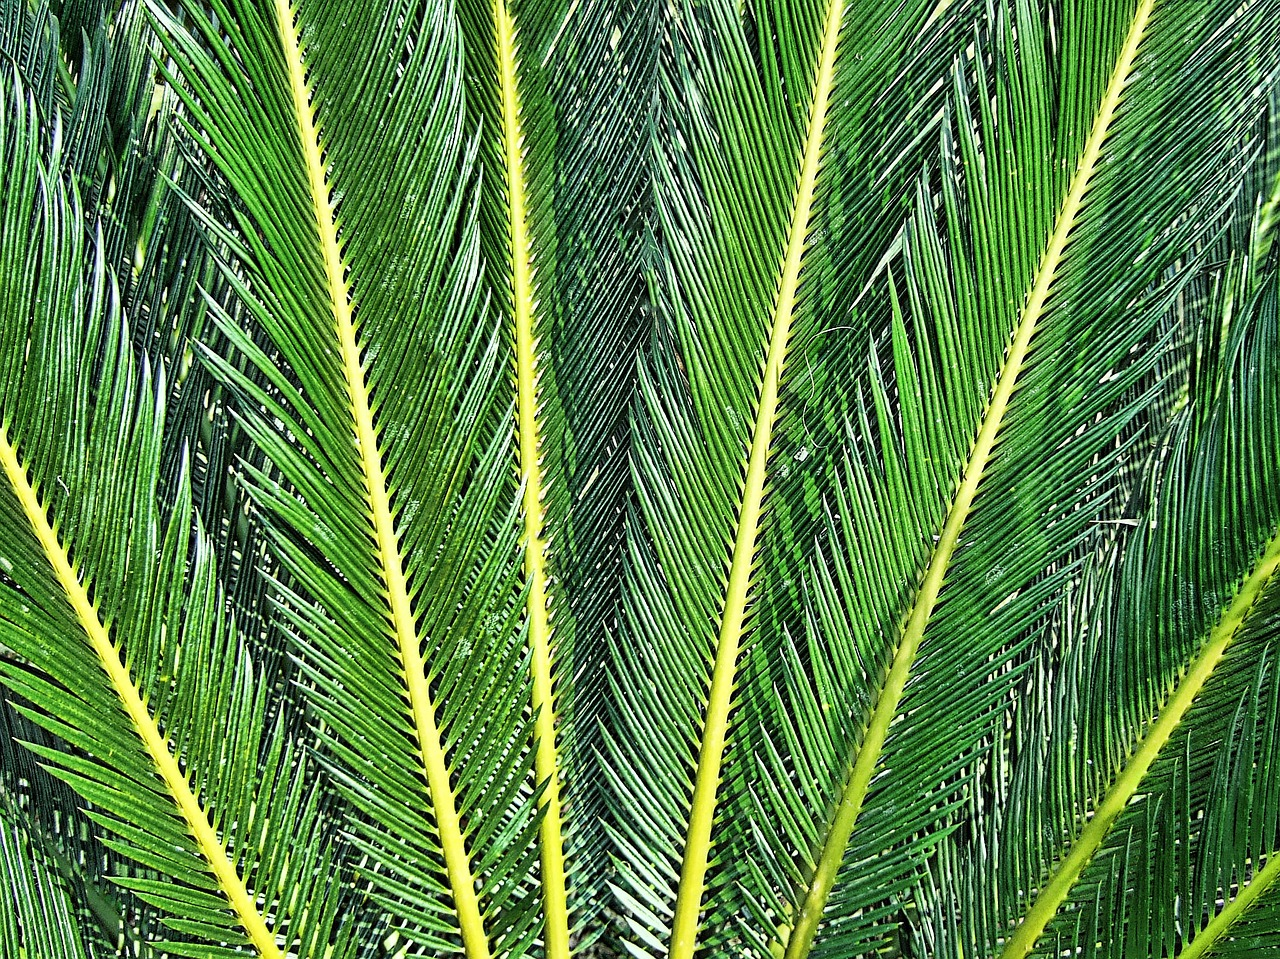 fern,texture,rays,green,leaves,needles,thailand,free pictures, free photos, free images, royalty free, free illustrations